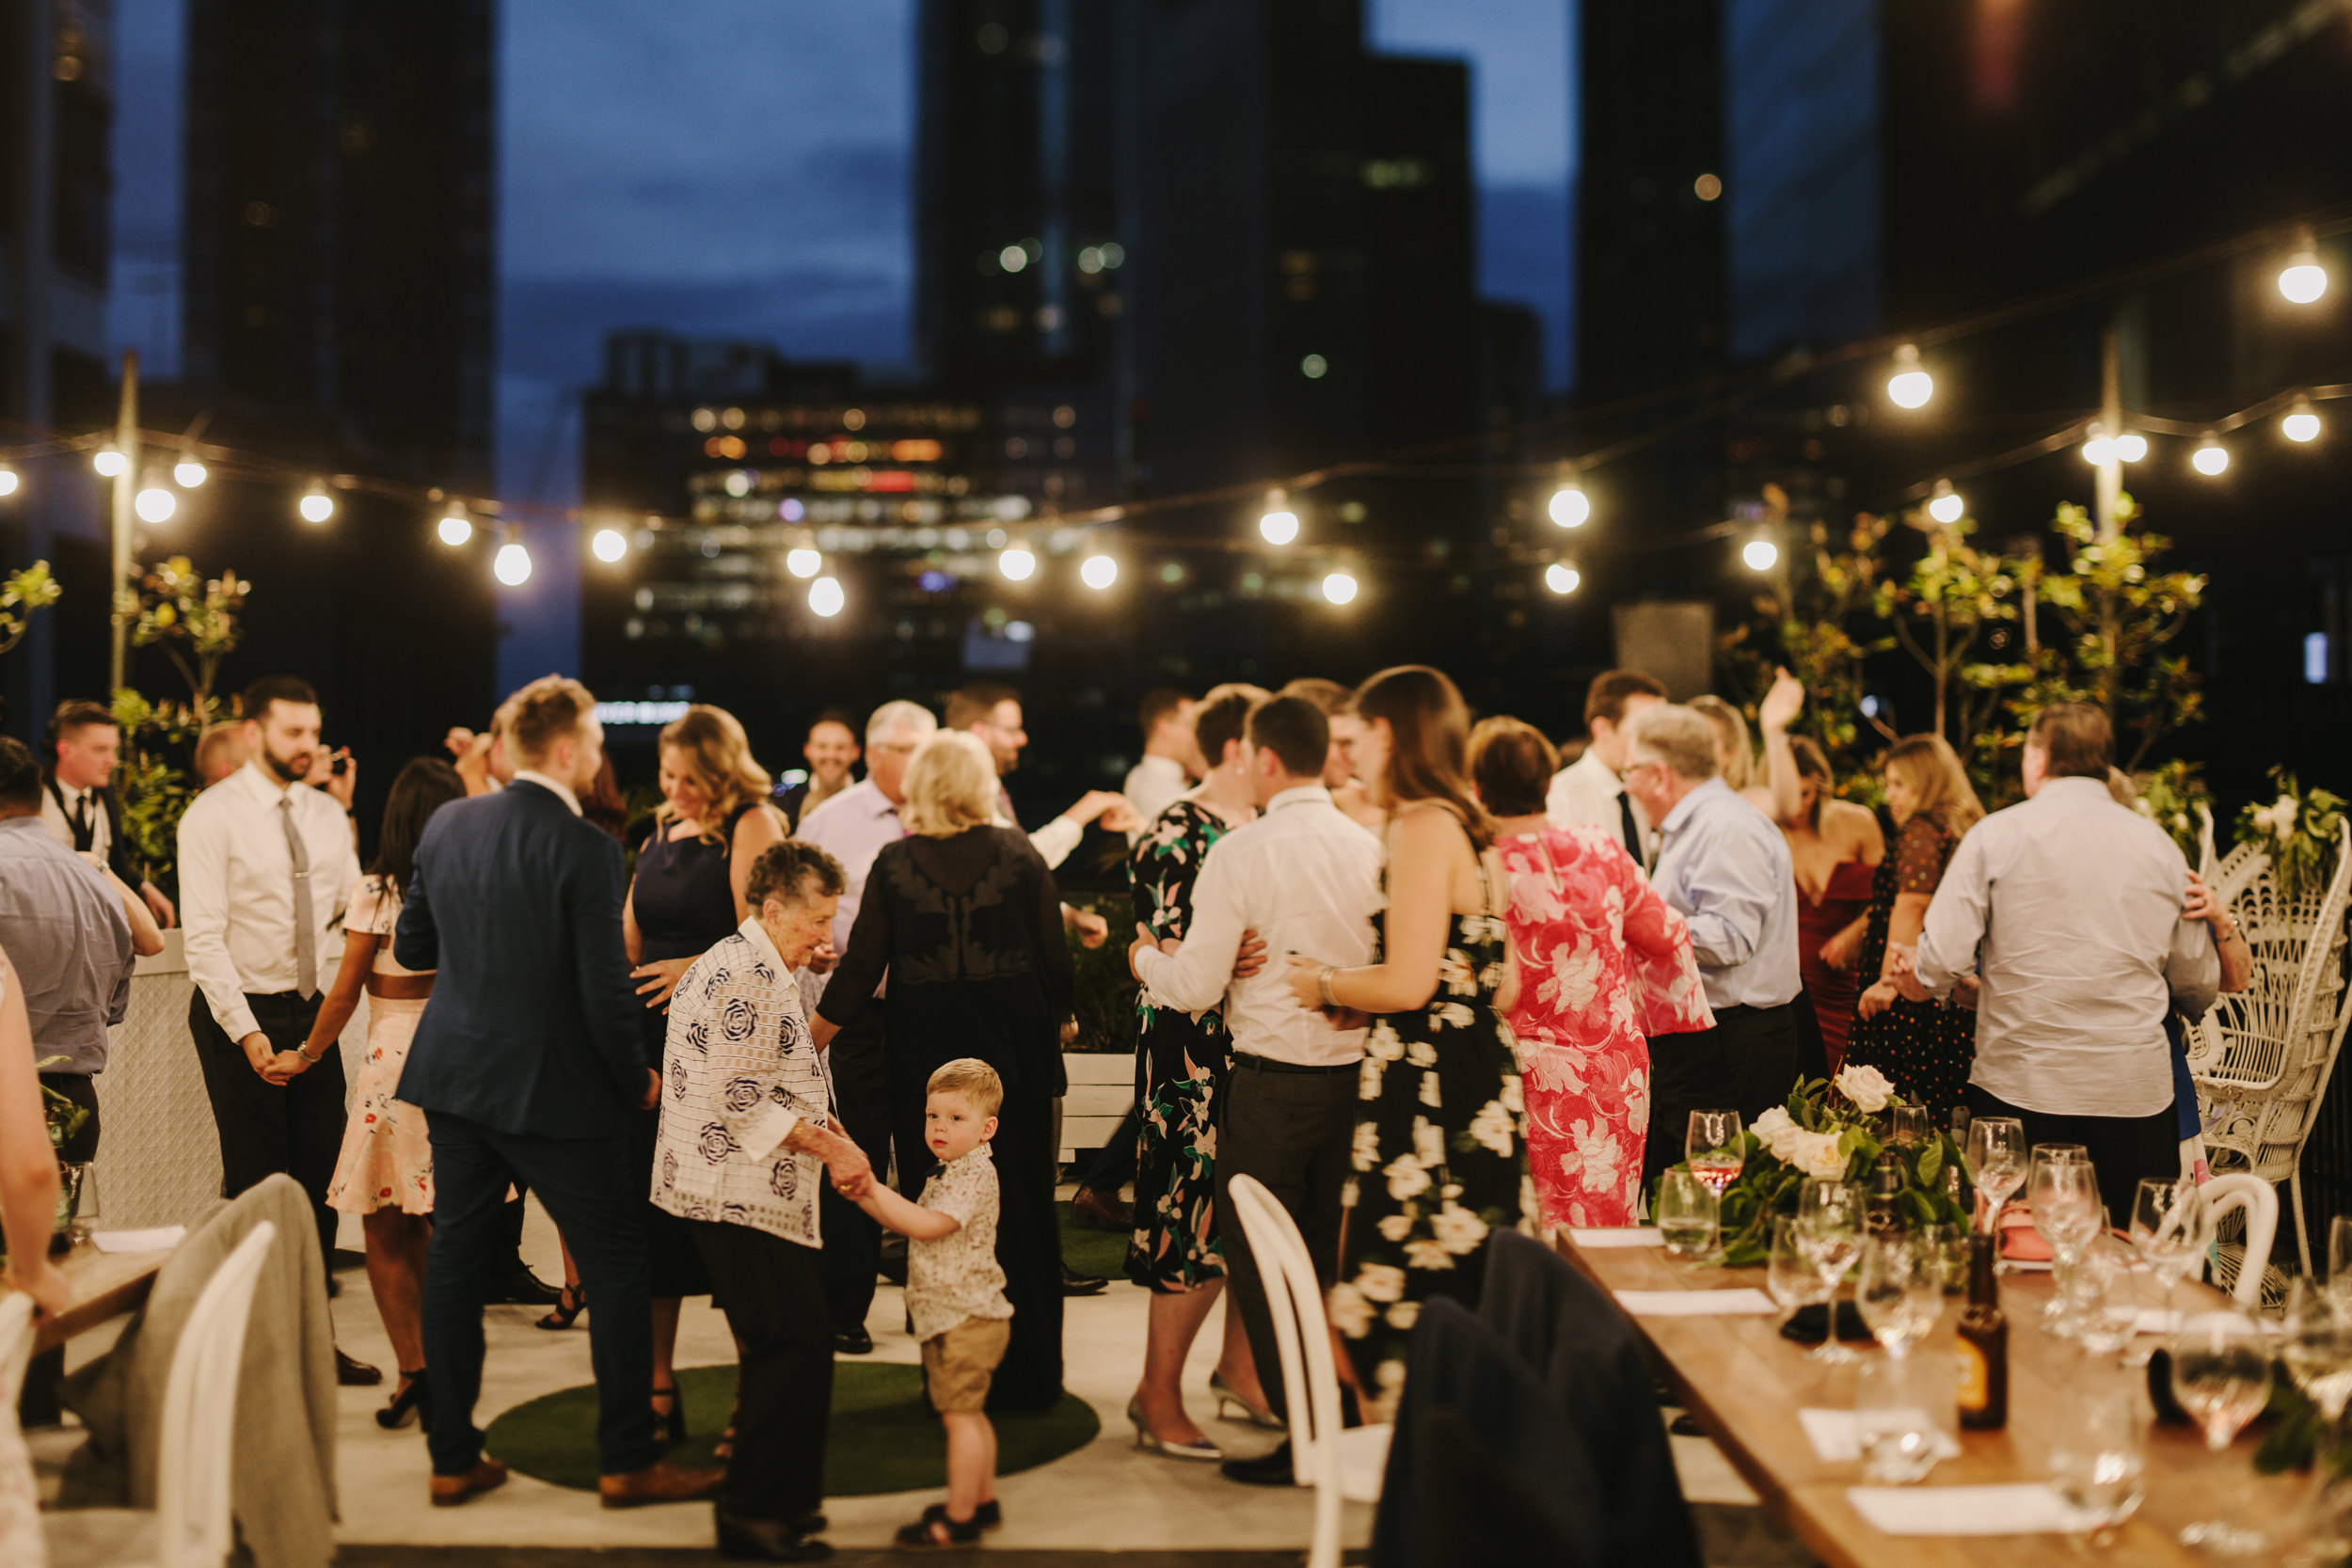 Melbourne_City_Rooftop_Wedding_Tyson_Brigette137.JPG